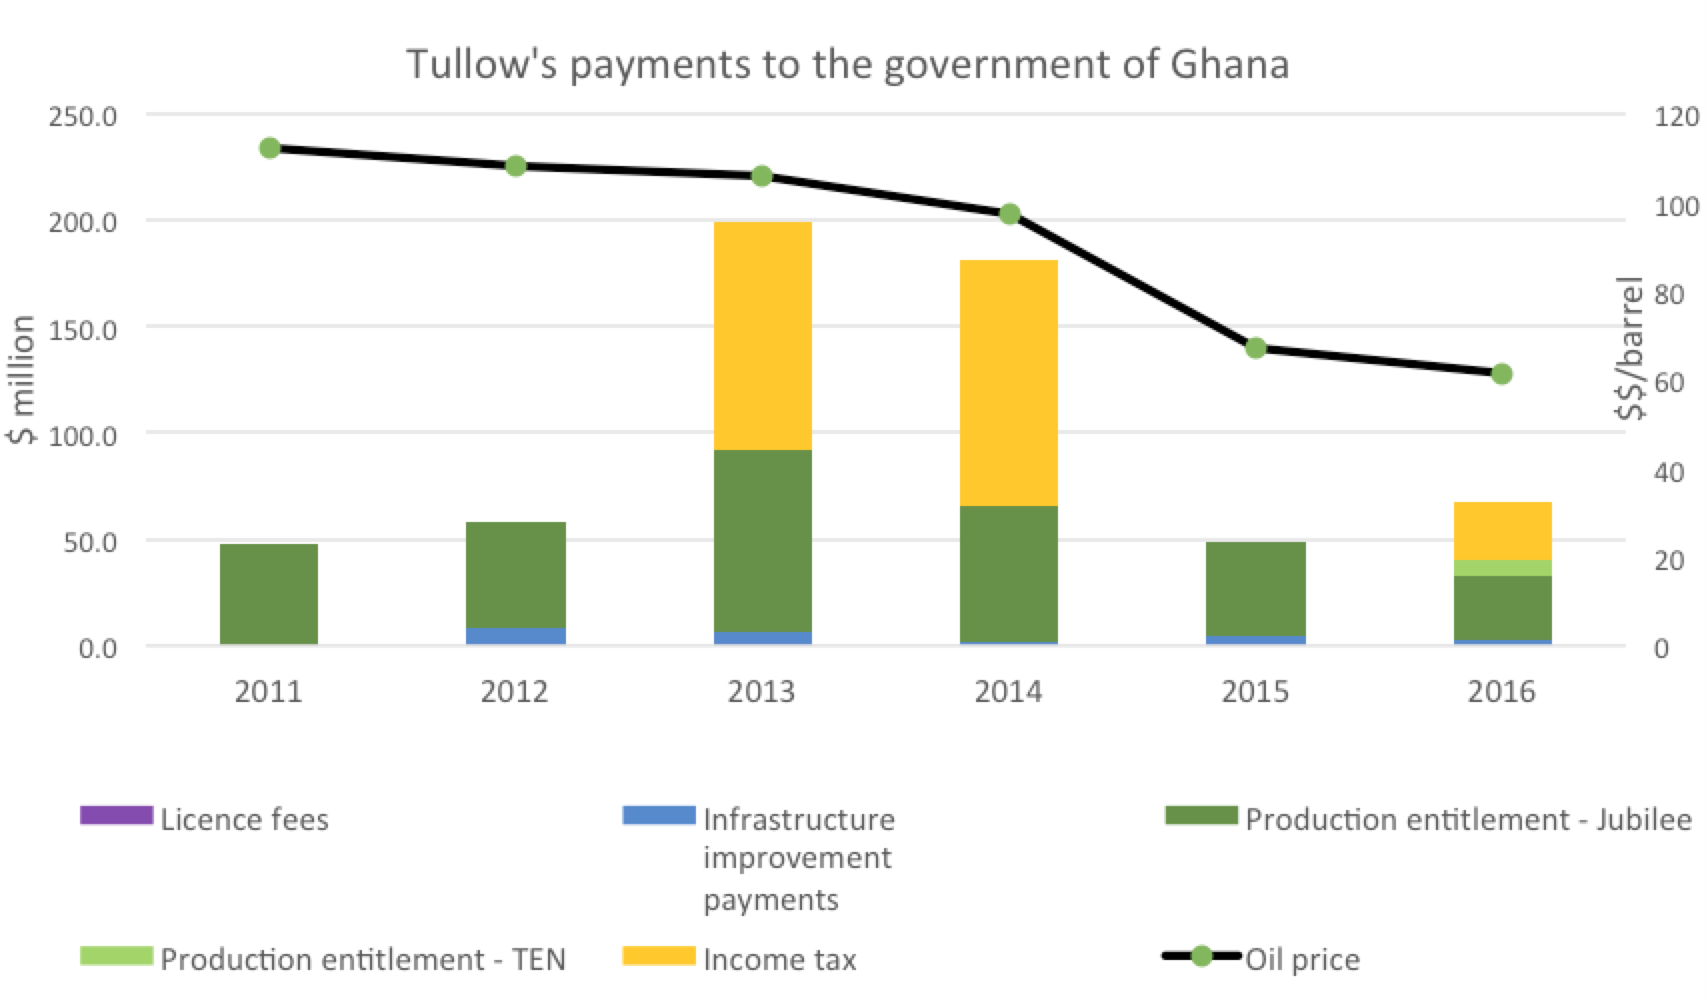 tullow payments